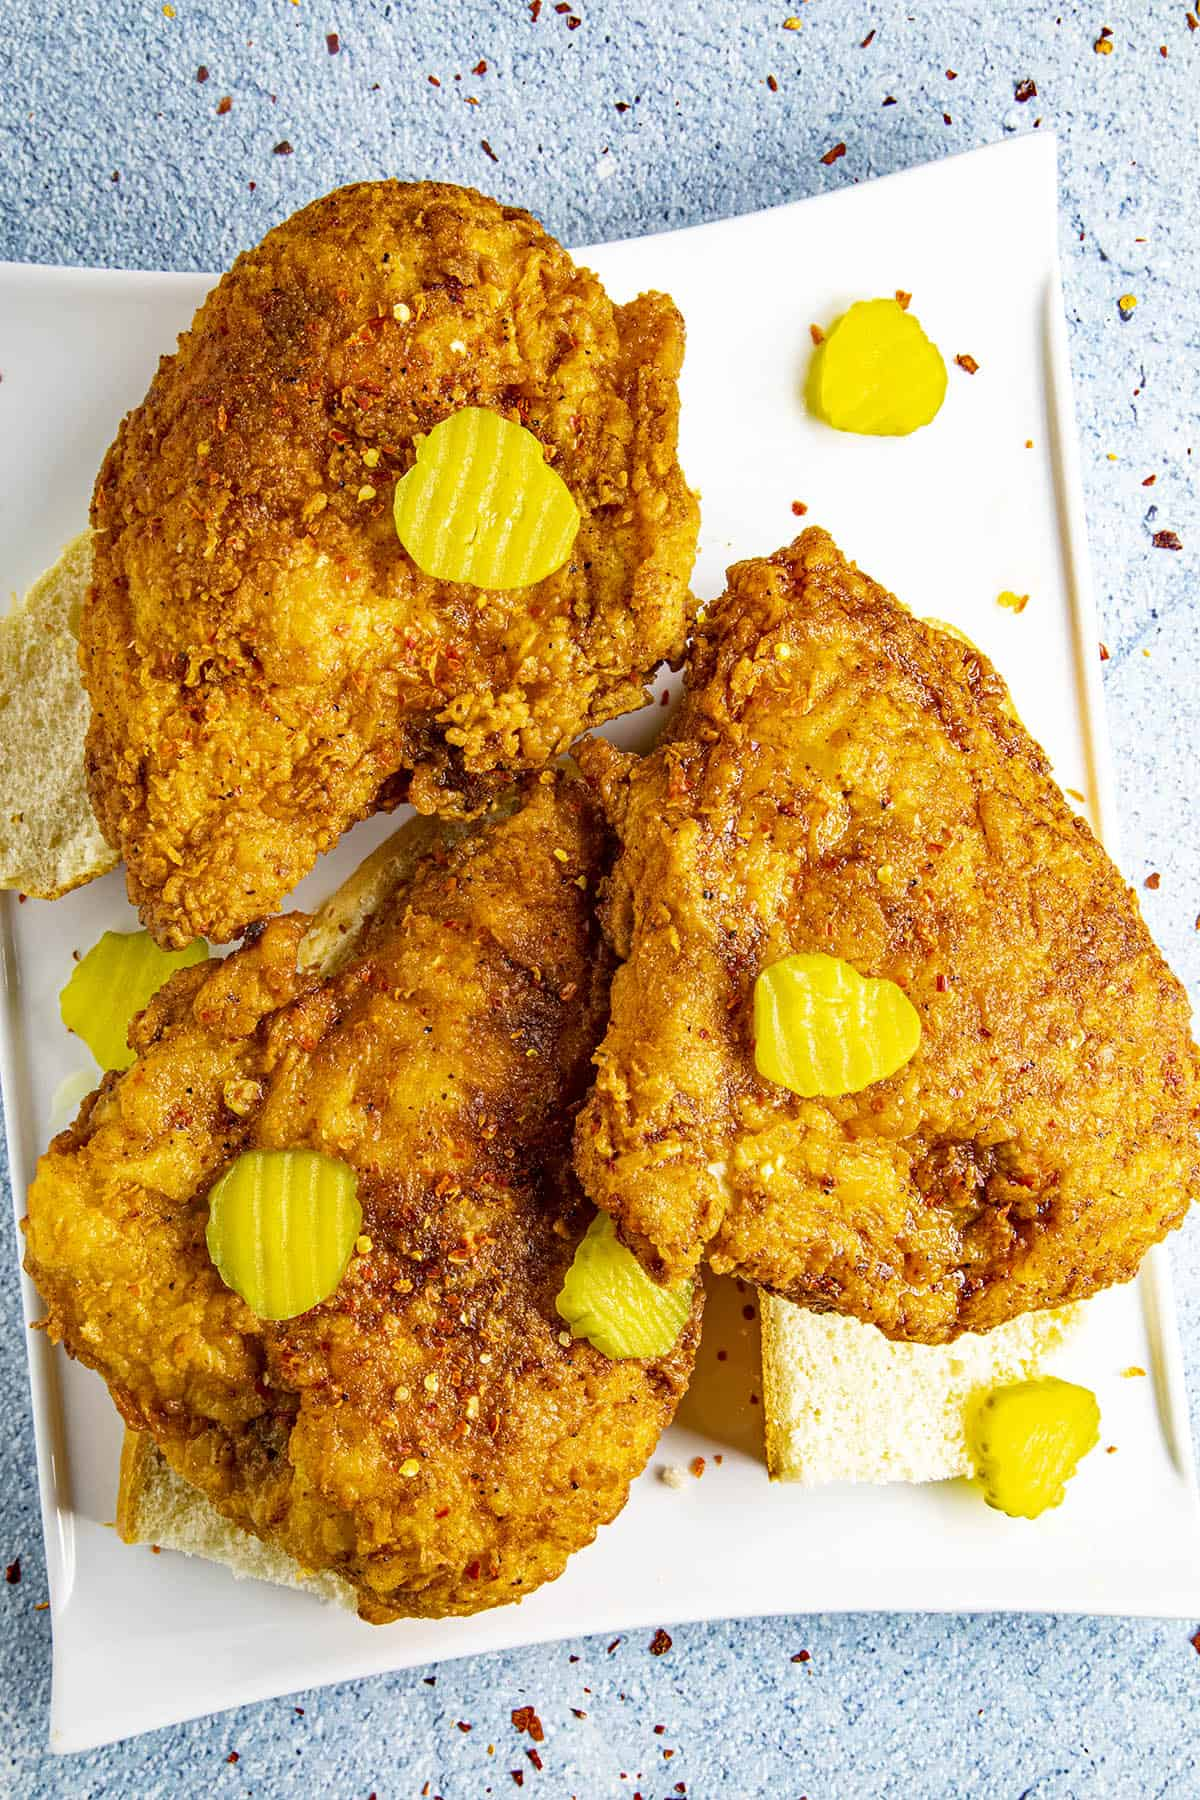 Three pieces of Nashville Hot Chicken on a plate, ready to serve